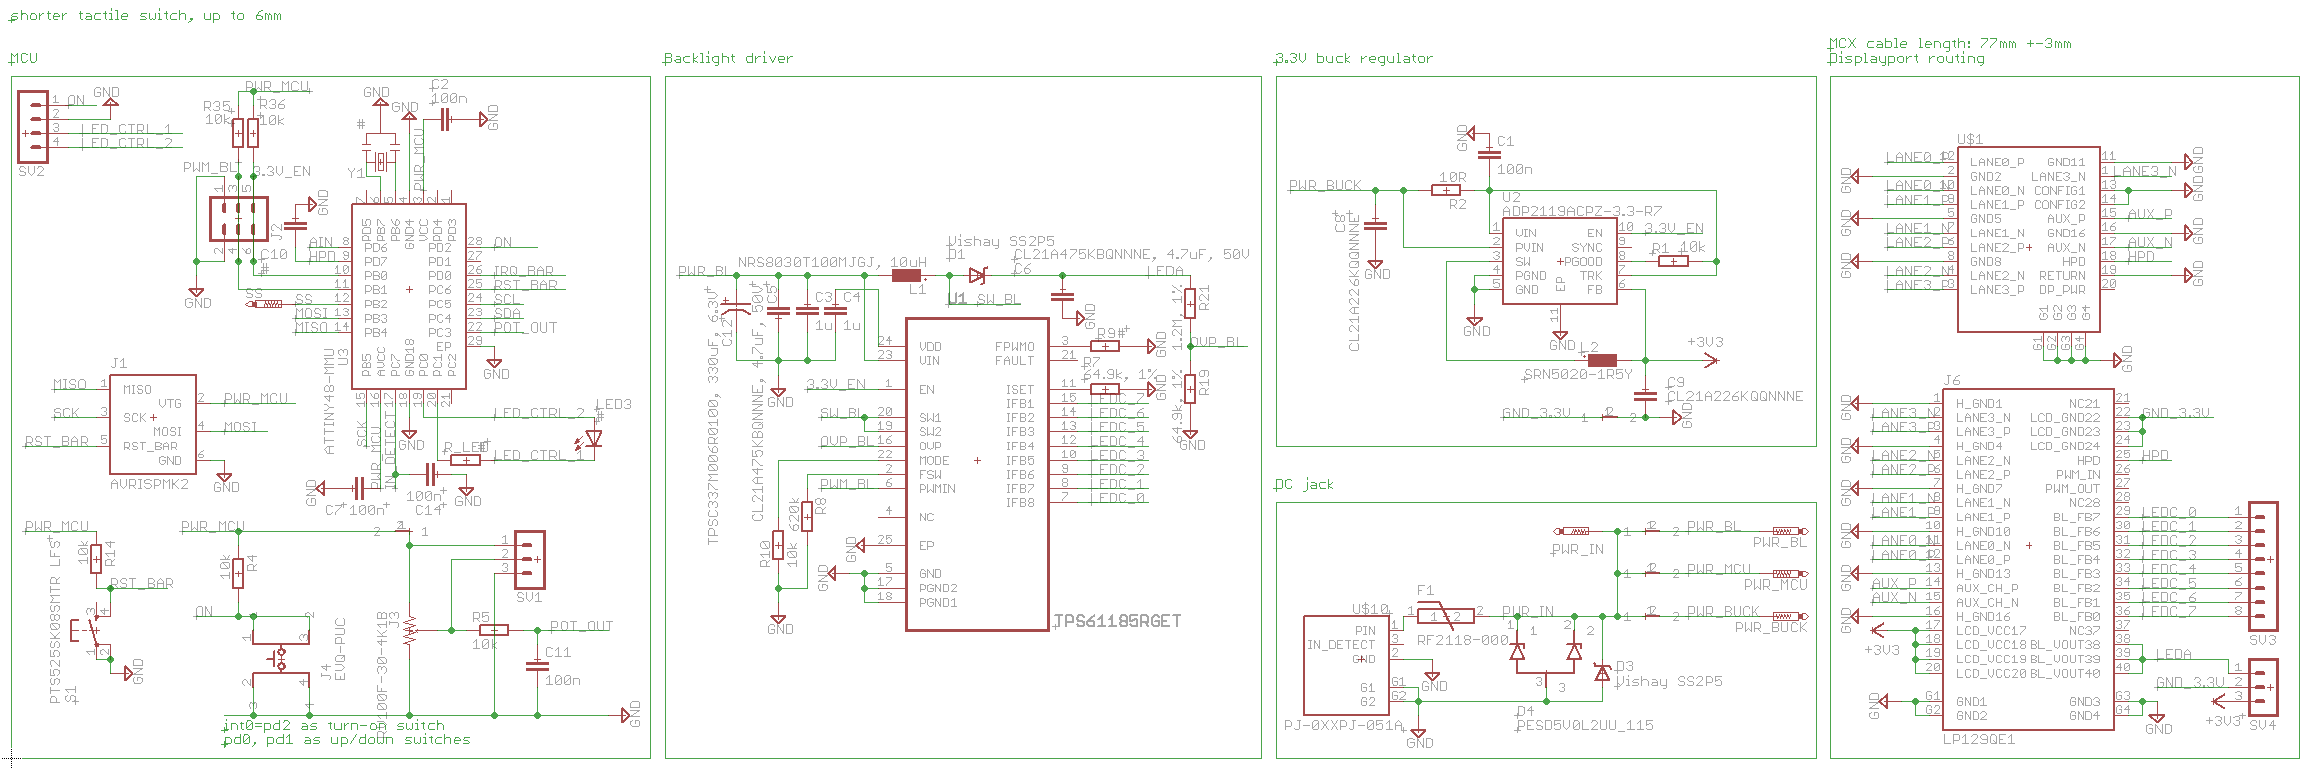 [schematic of Giger board.]